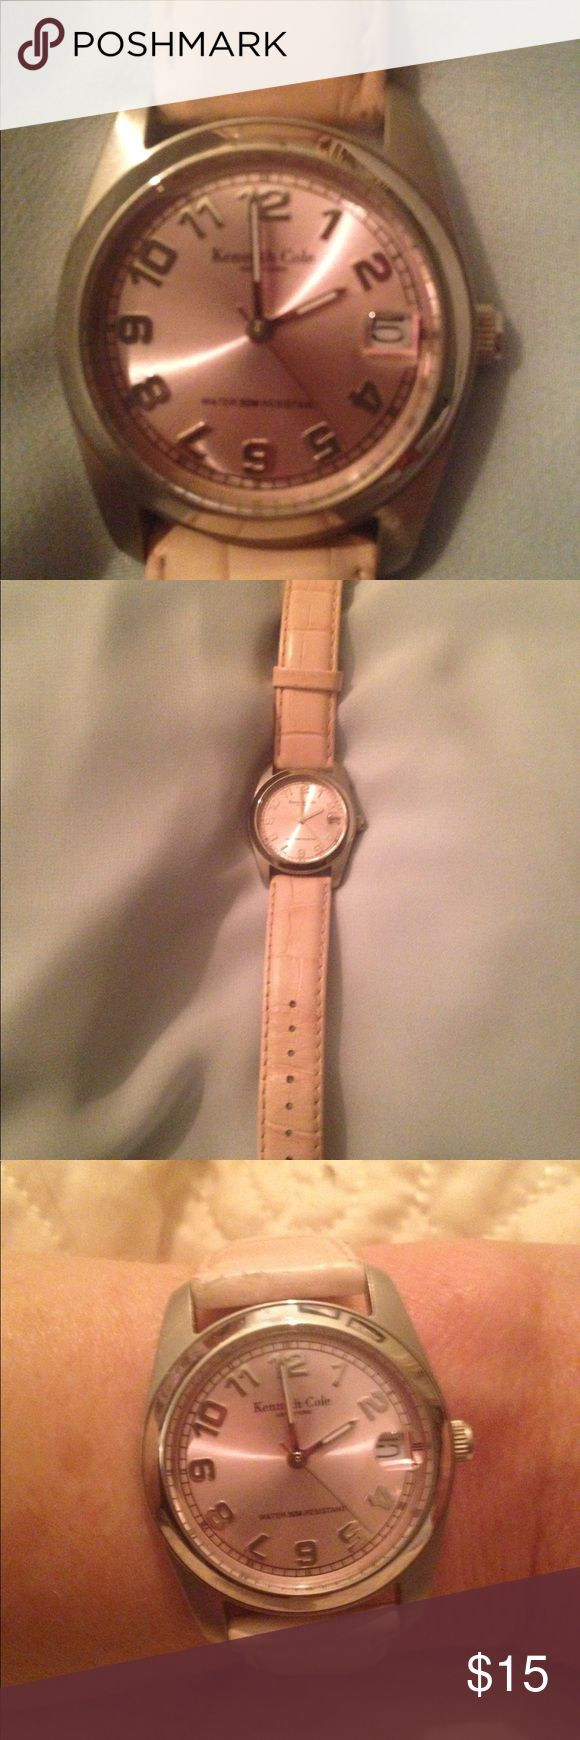 Ladies pink Kenneth Cole Watch Good used condition pink Kenneth Cole watch.  There are no scratches.  The face of the watch looks brand new.  Slight wear on the leather band.  Watch buckles so fits anyone without sizing.  Needs a battery. Kenneth Cole Accessories Watches